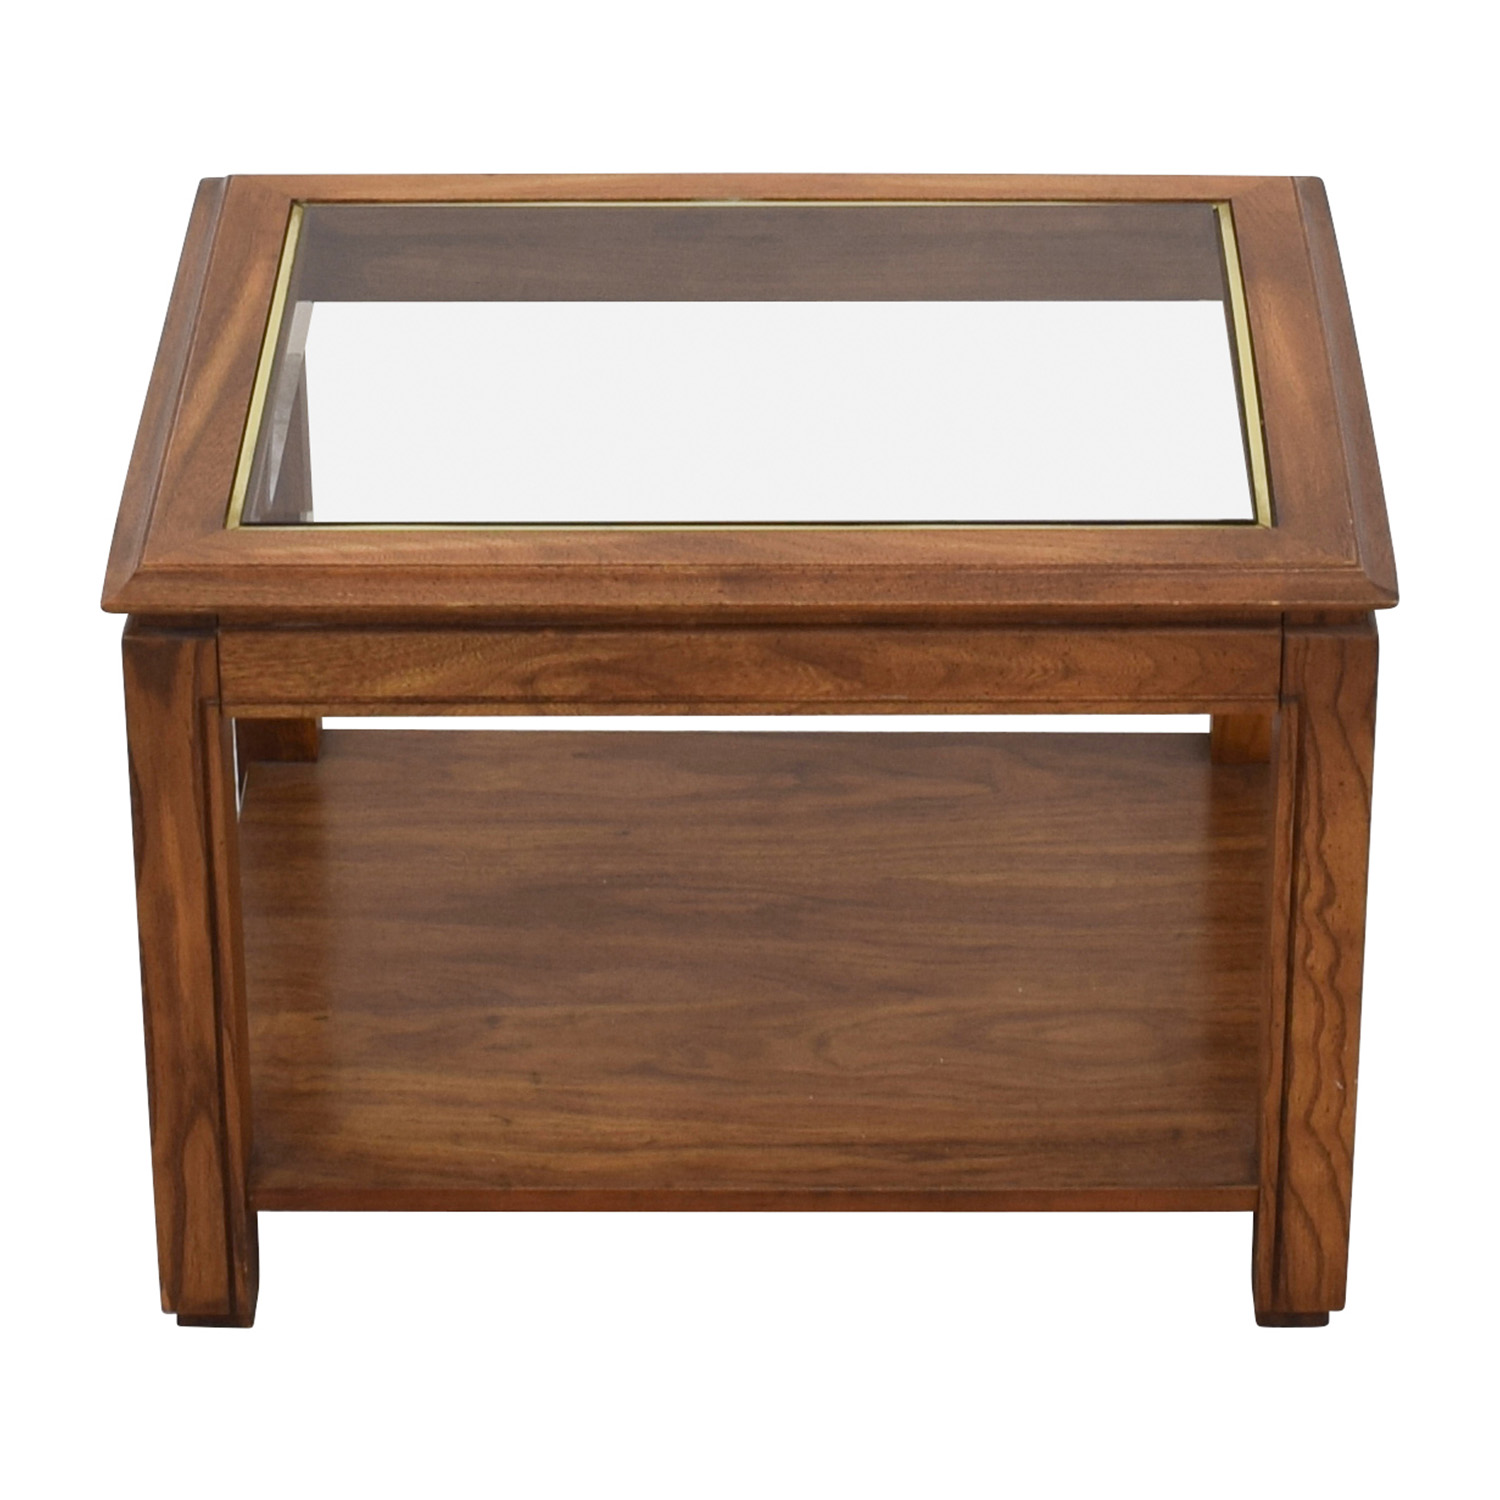 Walnut and Glass Rectangular Coffee Table